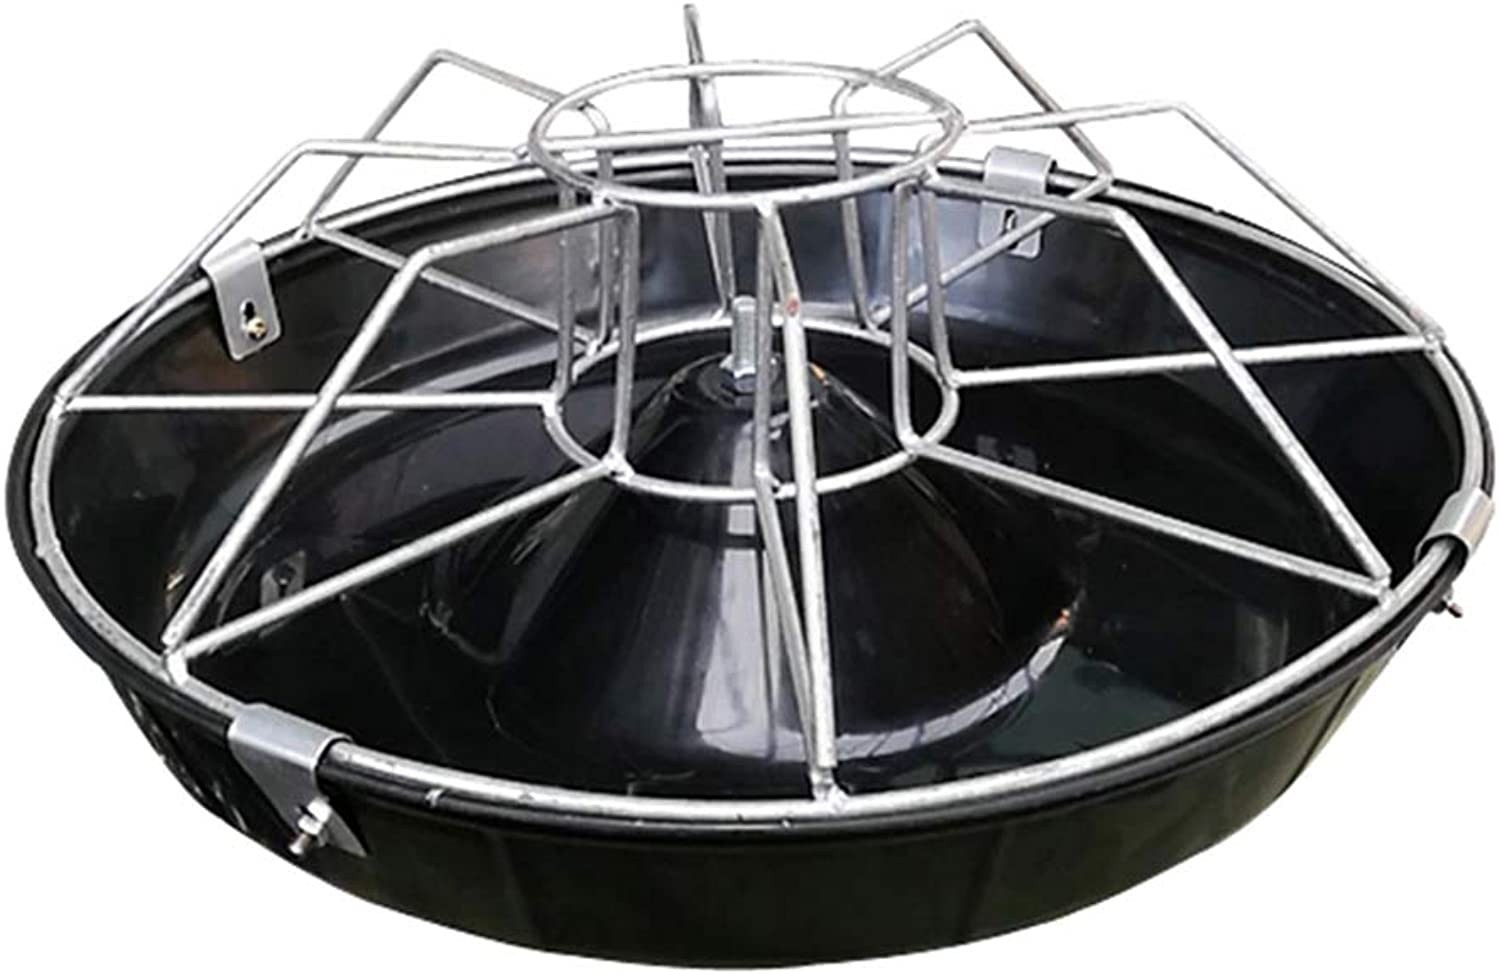 LYY Plastic Piglet Feeding Trough, Eight Columns Are Safe And Do Not Hurt The Pig's Mouth, Can Be Fixed On The Delivery Nursing Bed